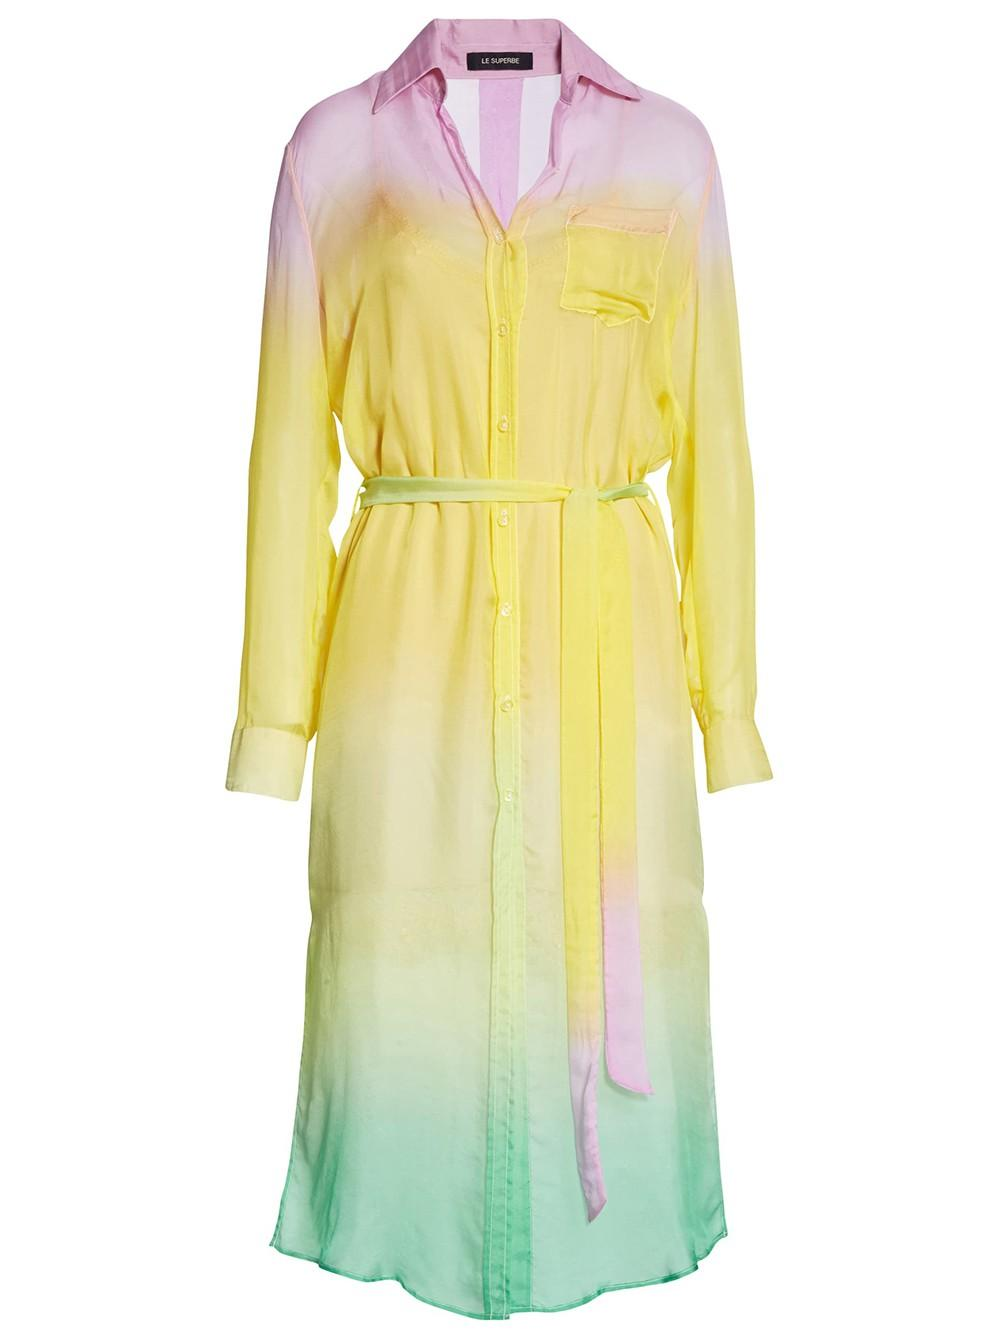 Tequila Sunrise Shirtdress Item # SP20-264MB